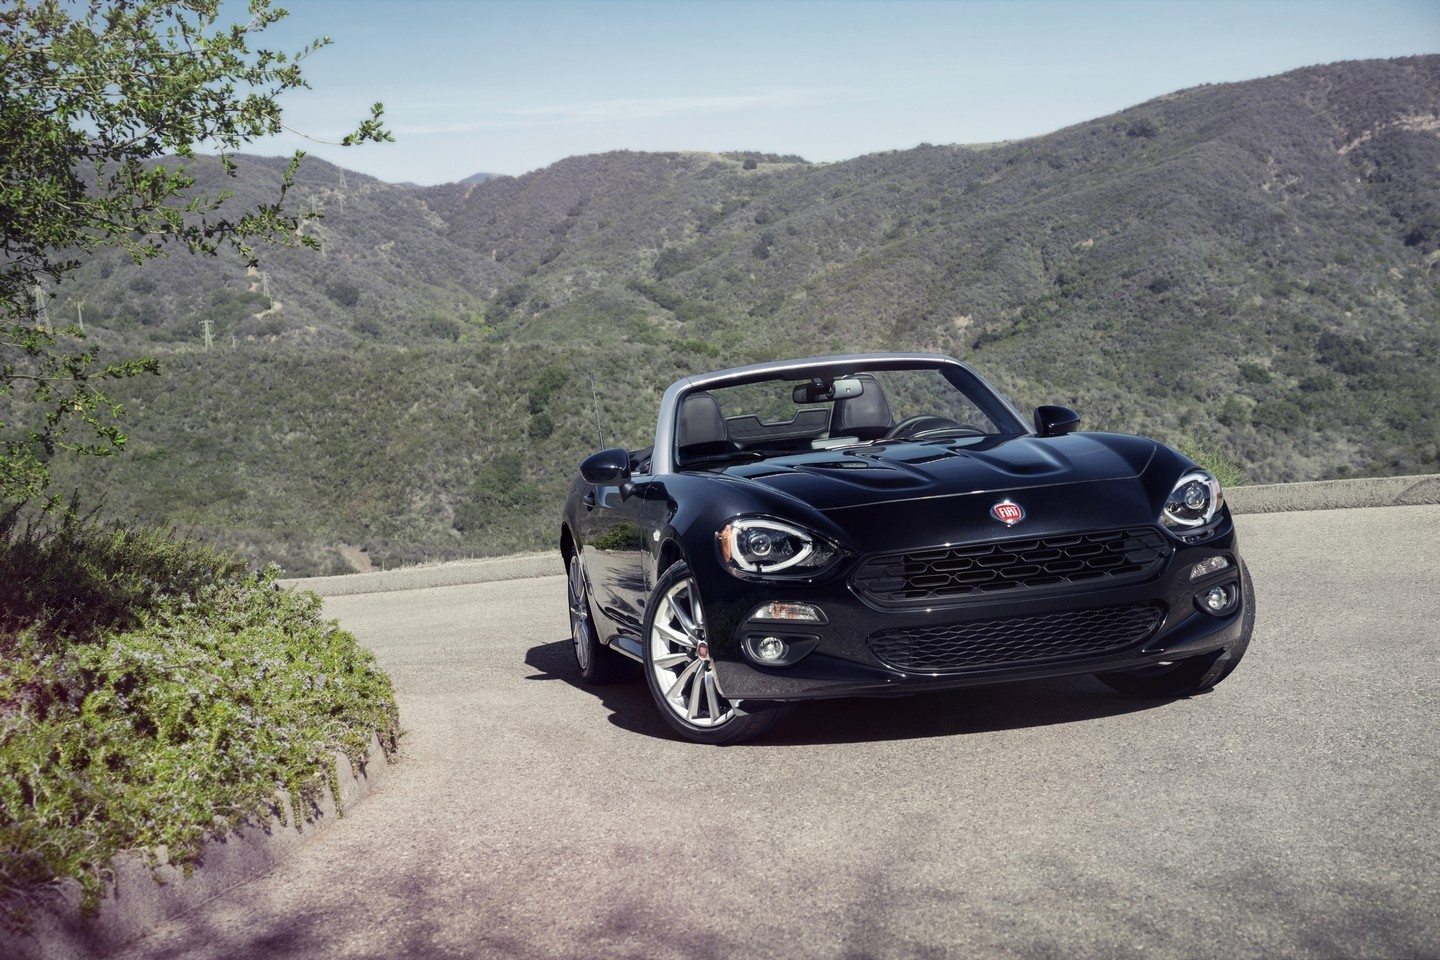 2017 fiat 124 spider revealed the fiata turbo is here autoevolution. Black Bedroom Furniture Sets. Home Design Ideas